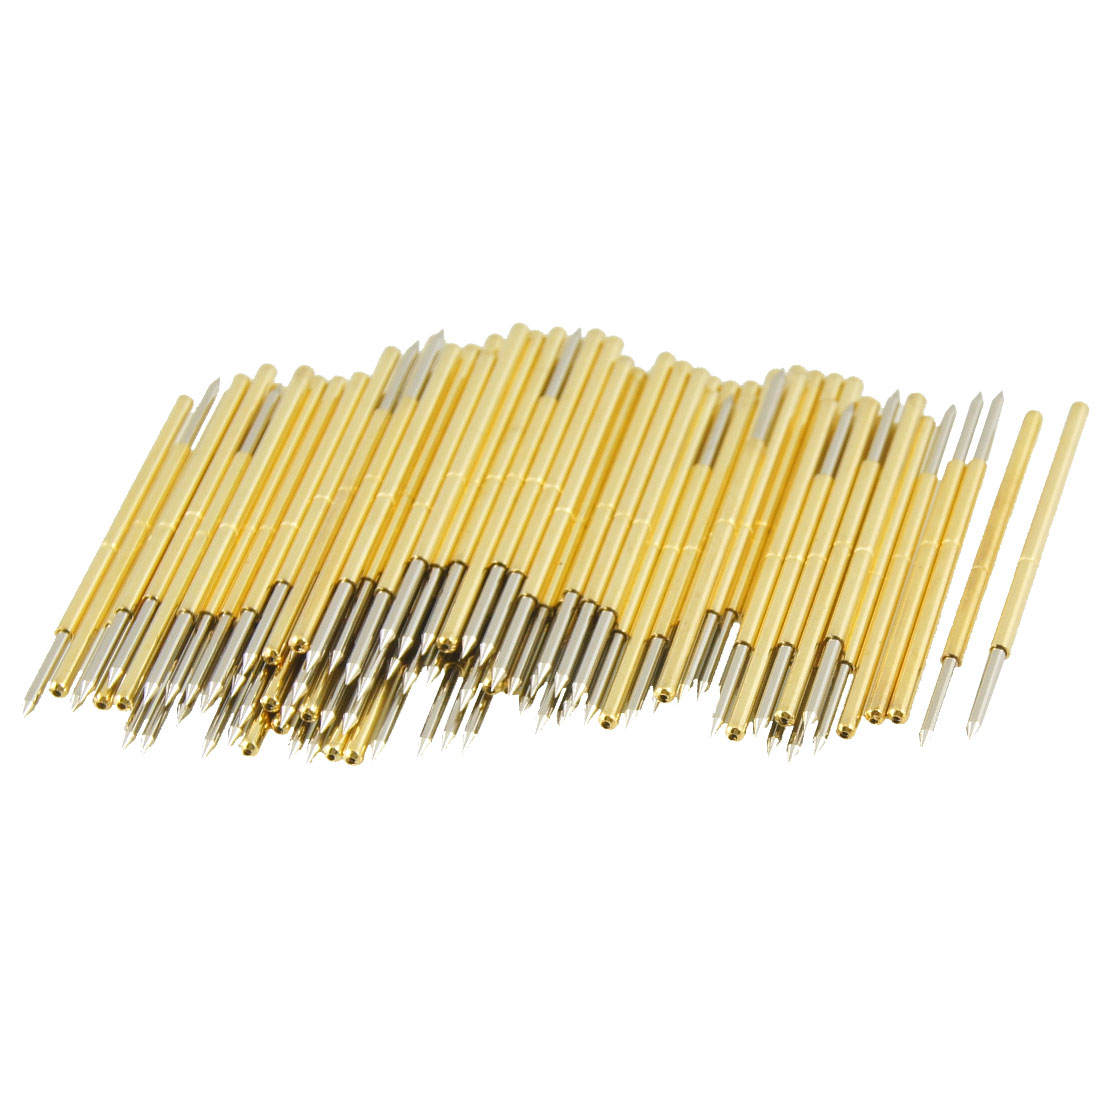 100 Pcs 9100B 1mm 30 Degree Spear Tip Dia Spring Test Probes Pins